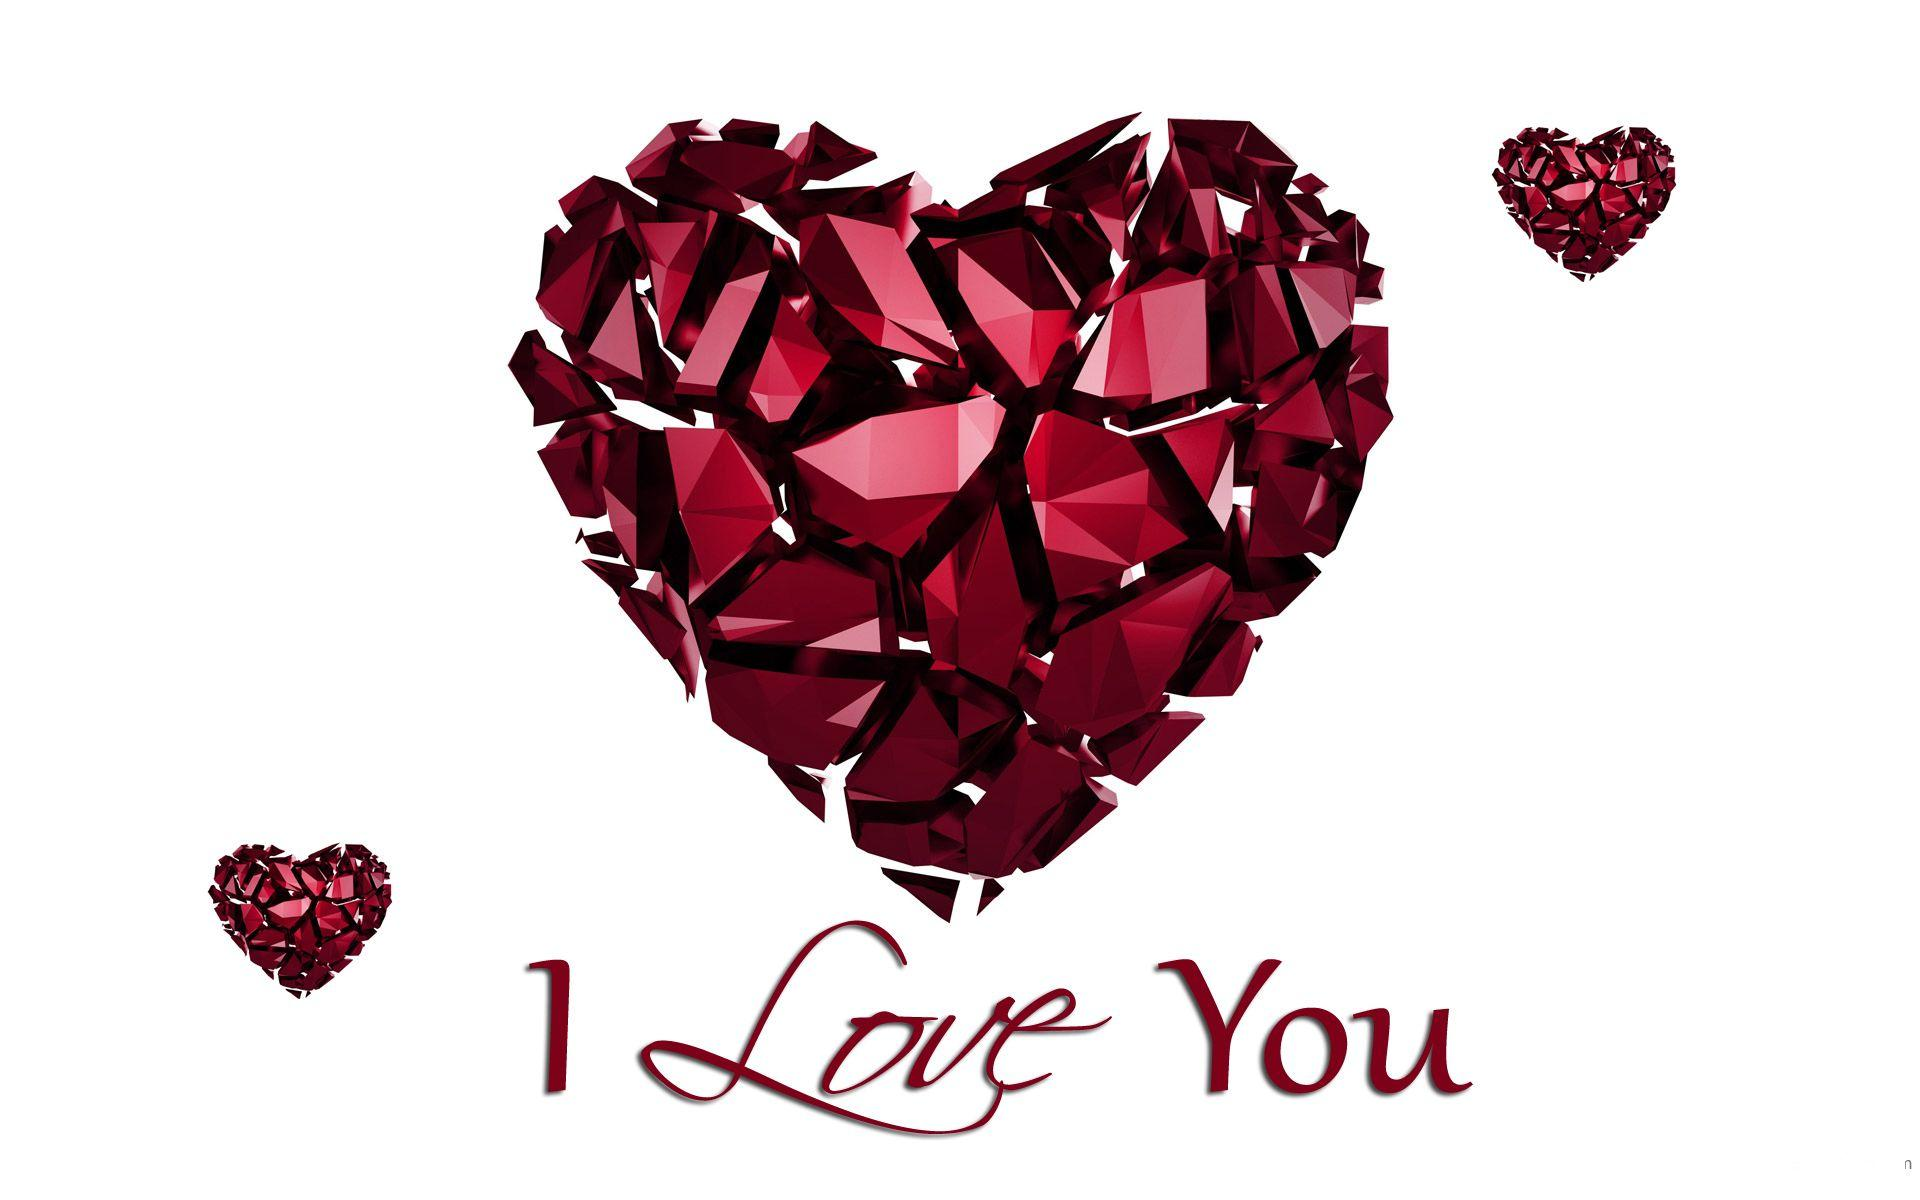 Love Wallpaper 3d Image : I Love You Image Wallpapers - Wallpaper cave